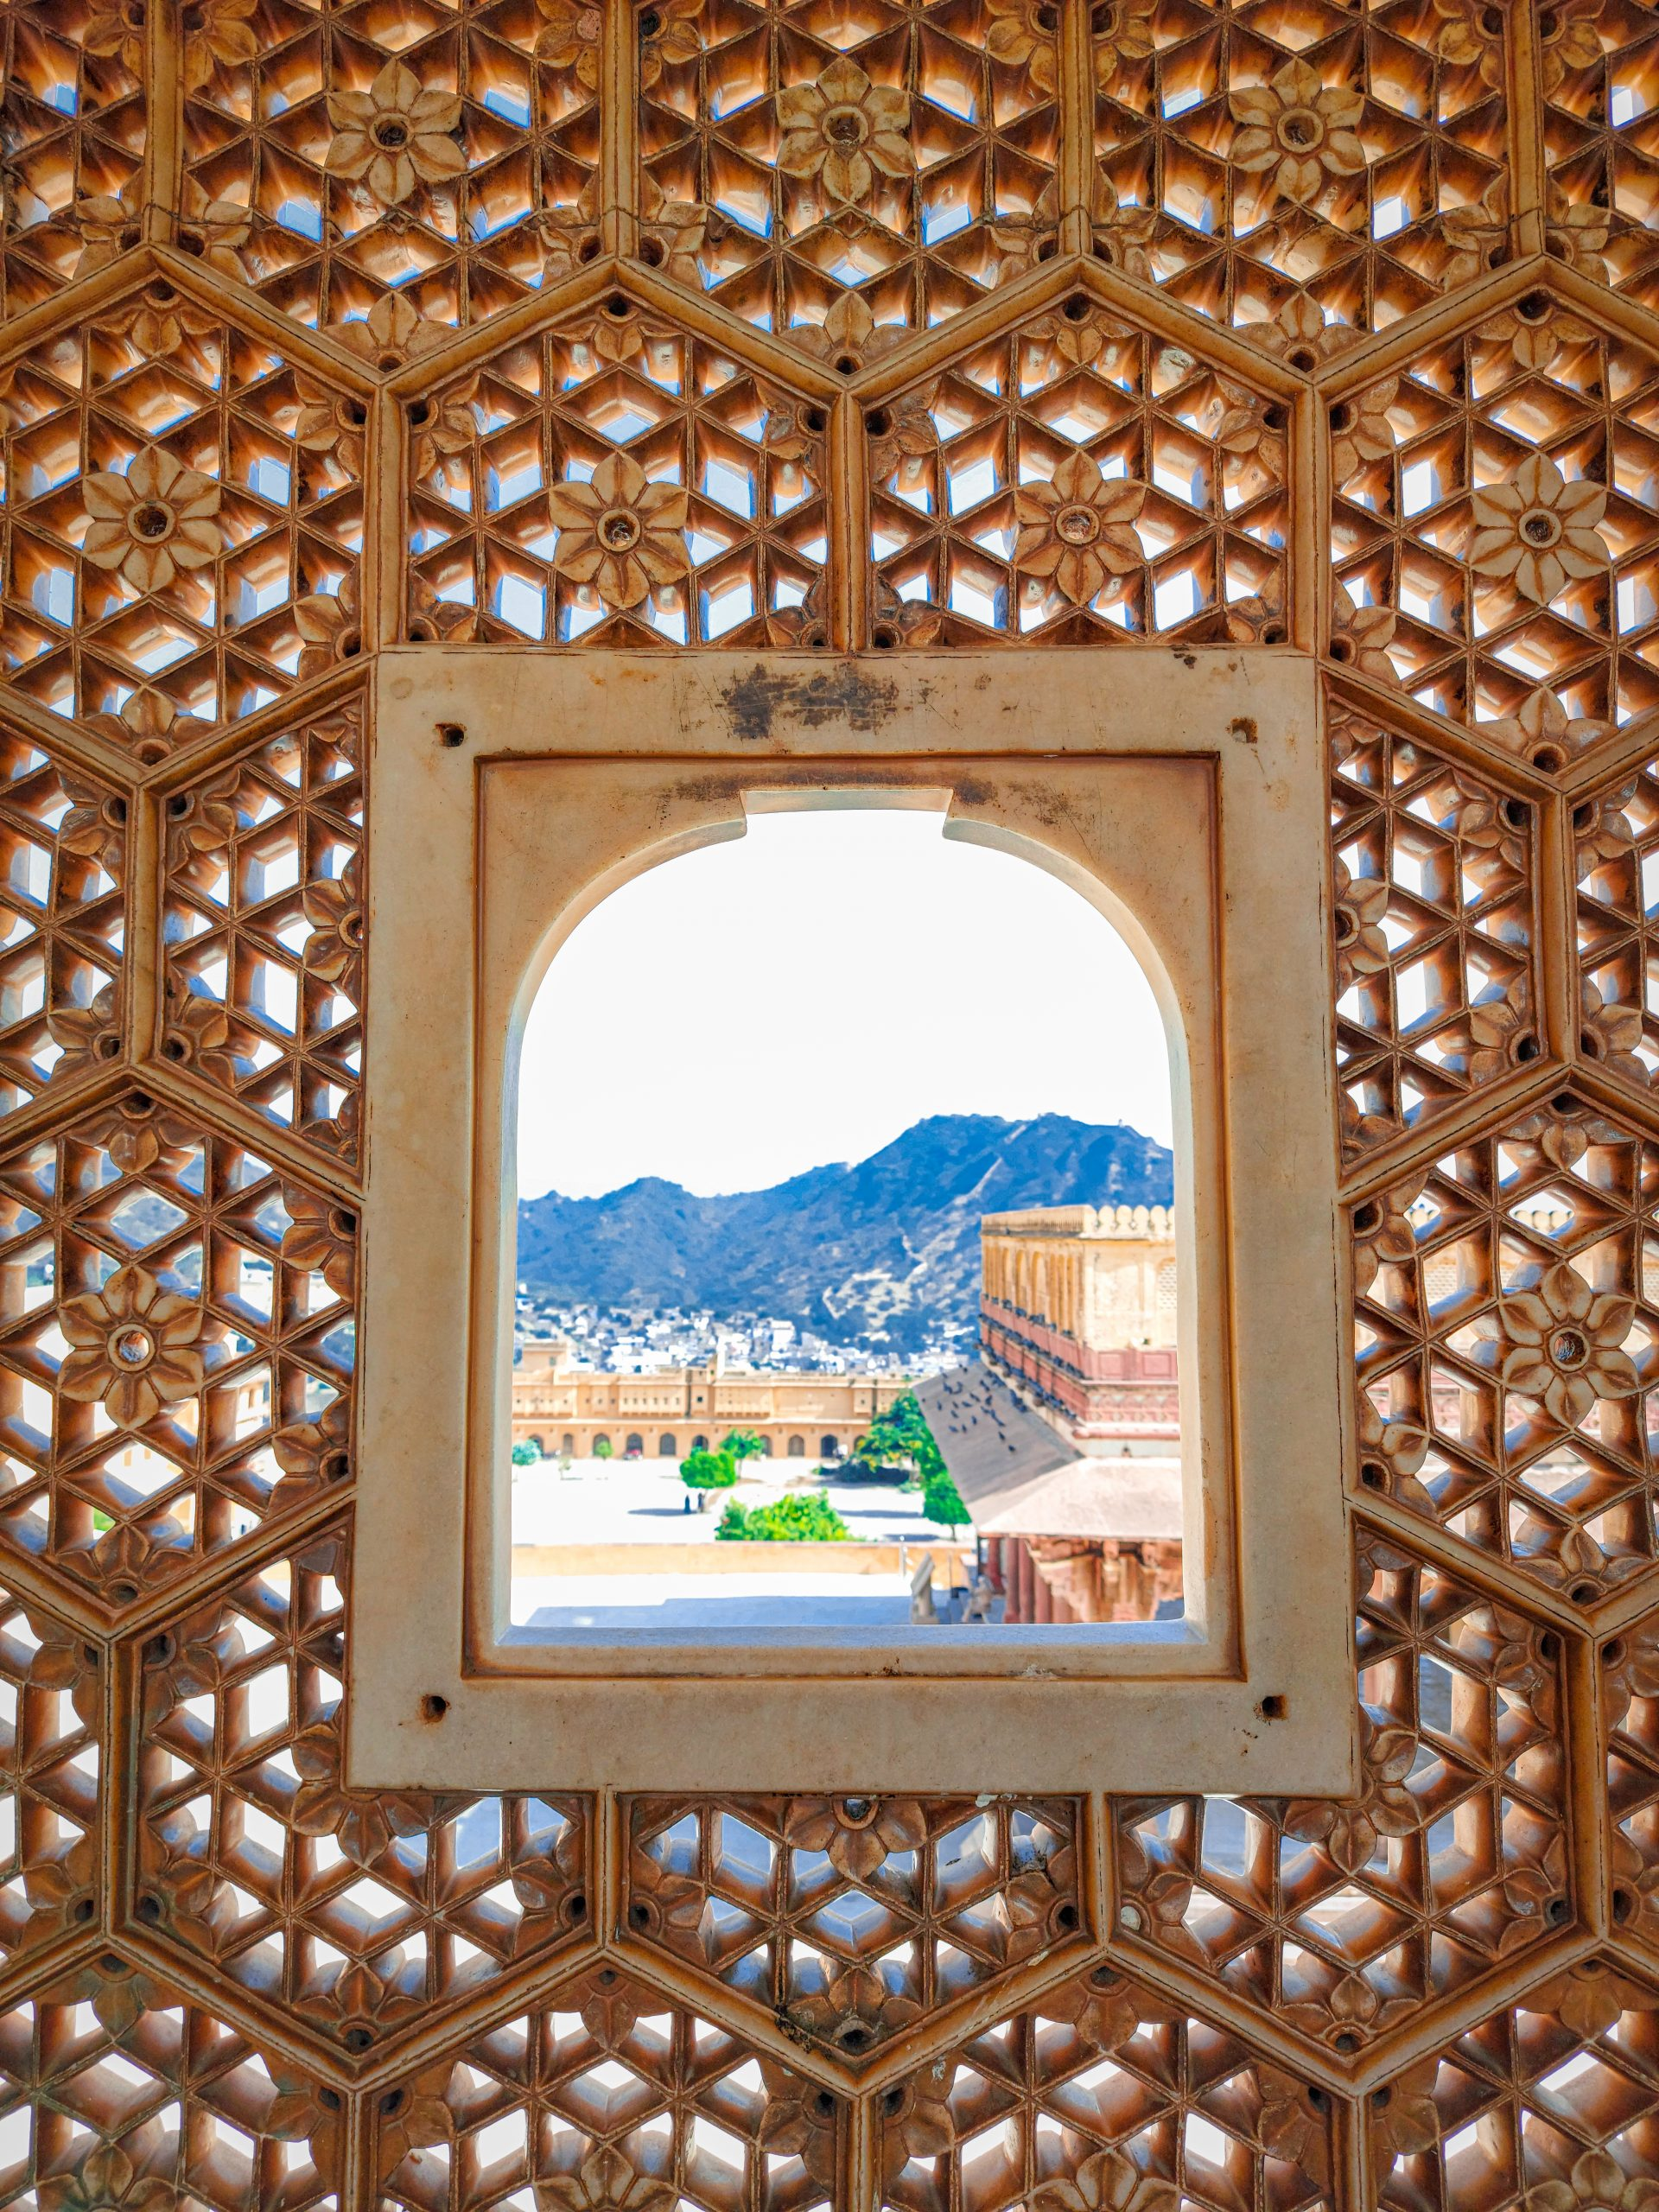 Window of a palace in Jaipur